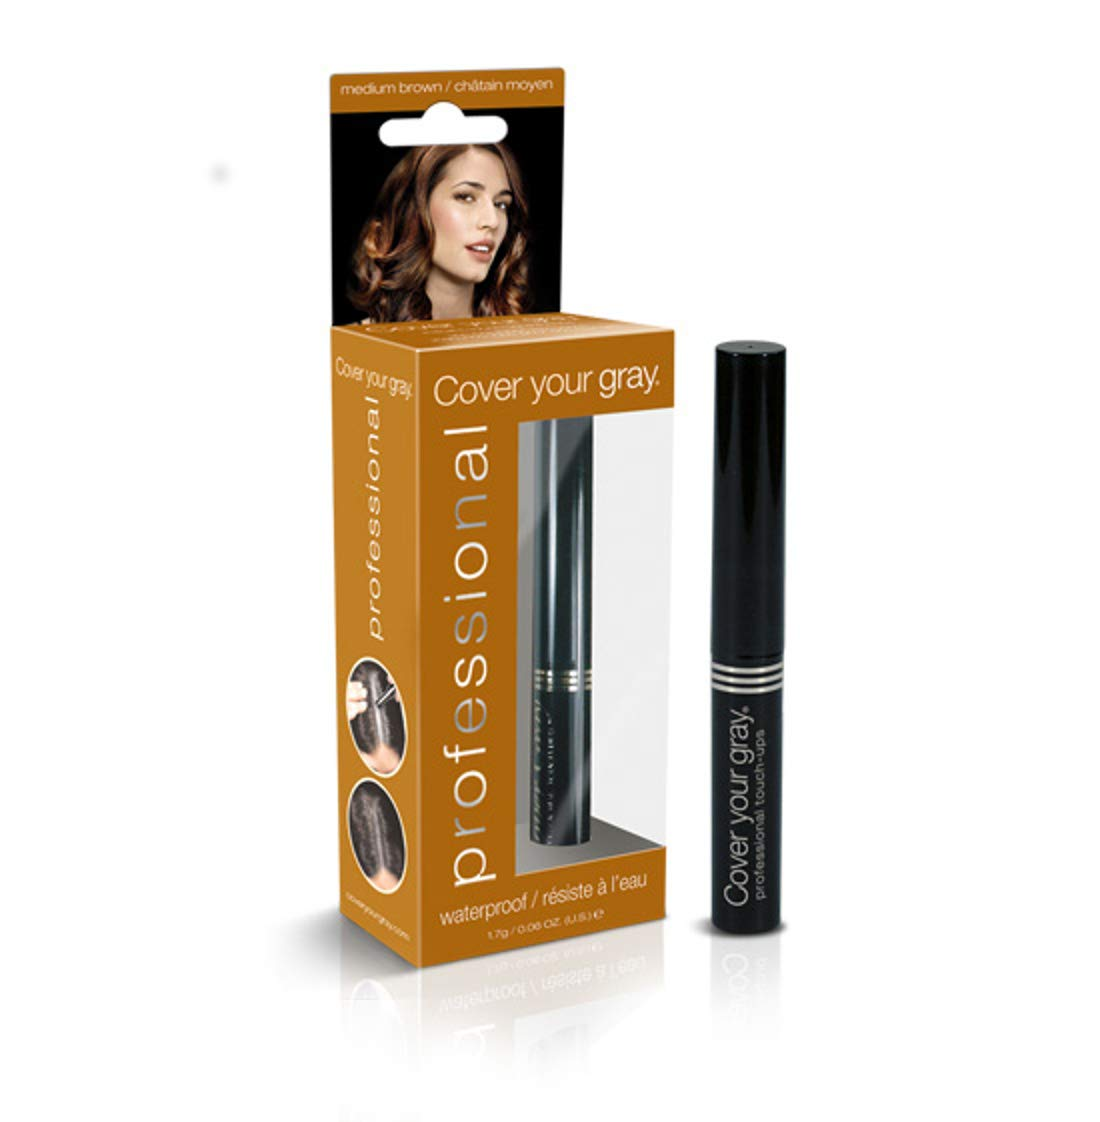 Cover Your Grey for Women Professional Touch Up Stick, Medium Brown, 1.7 Ounce Cov-0681